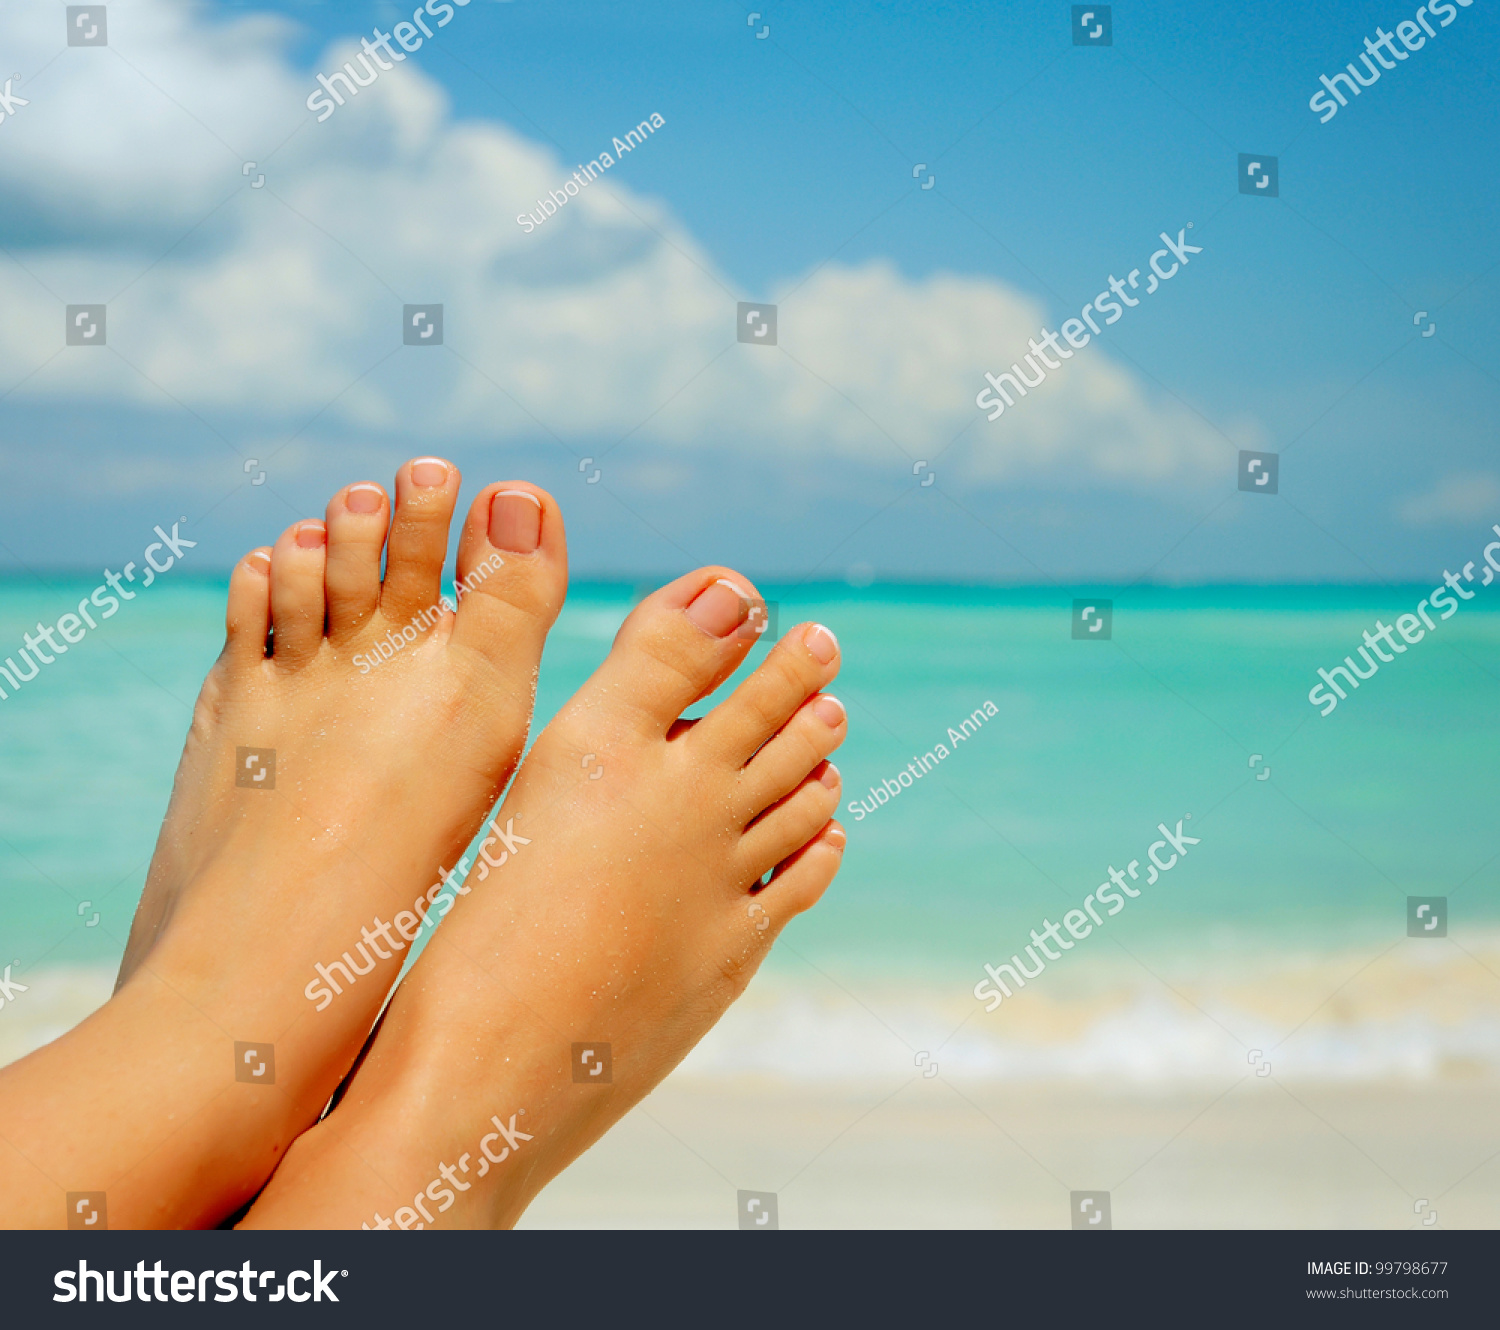 Vacation Concept. Tanning On The Beach. Woman'S Bare Feet